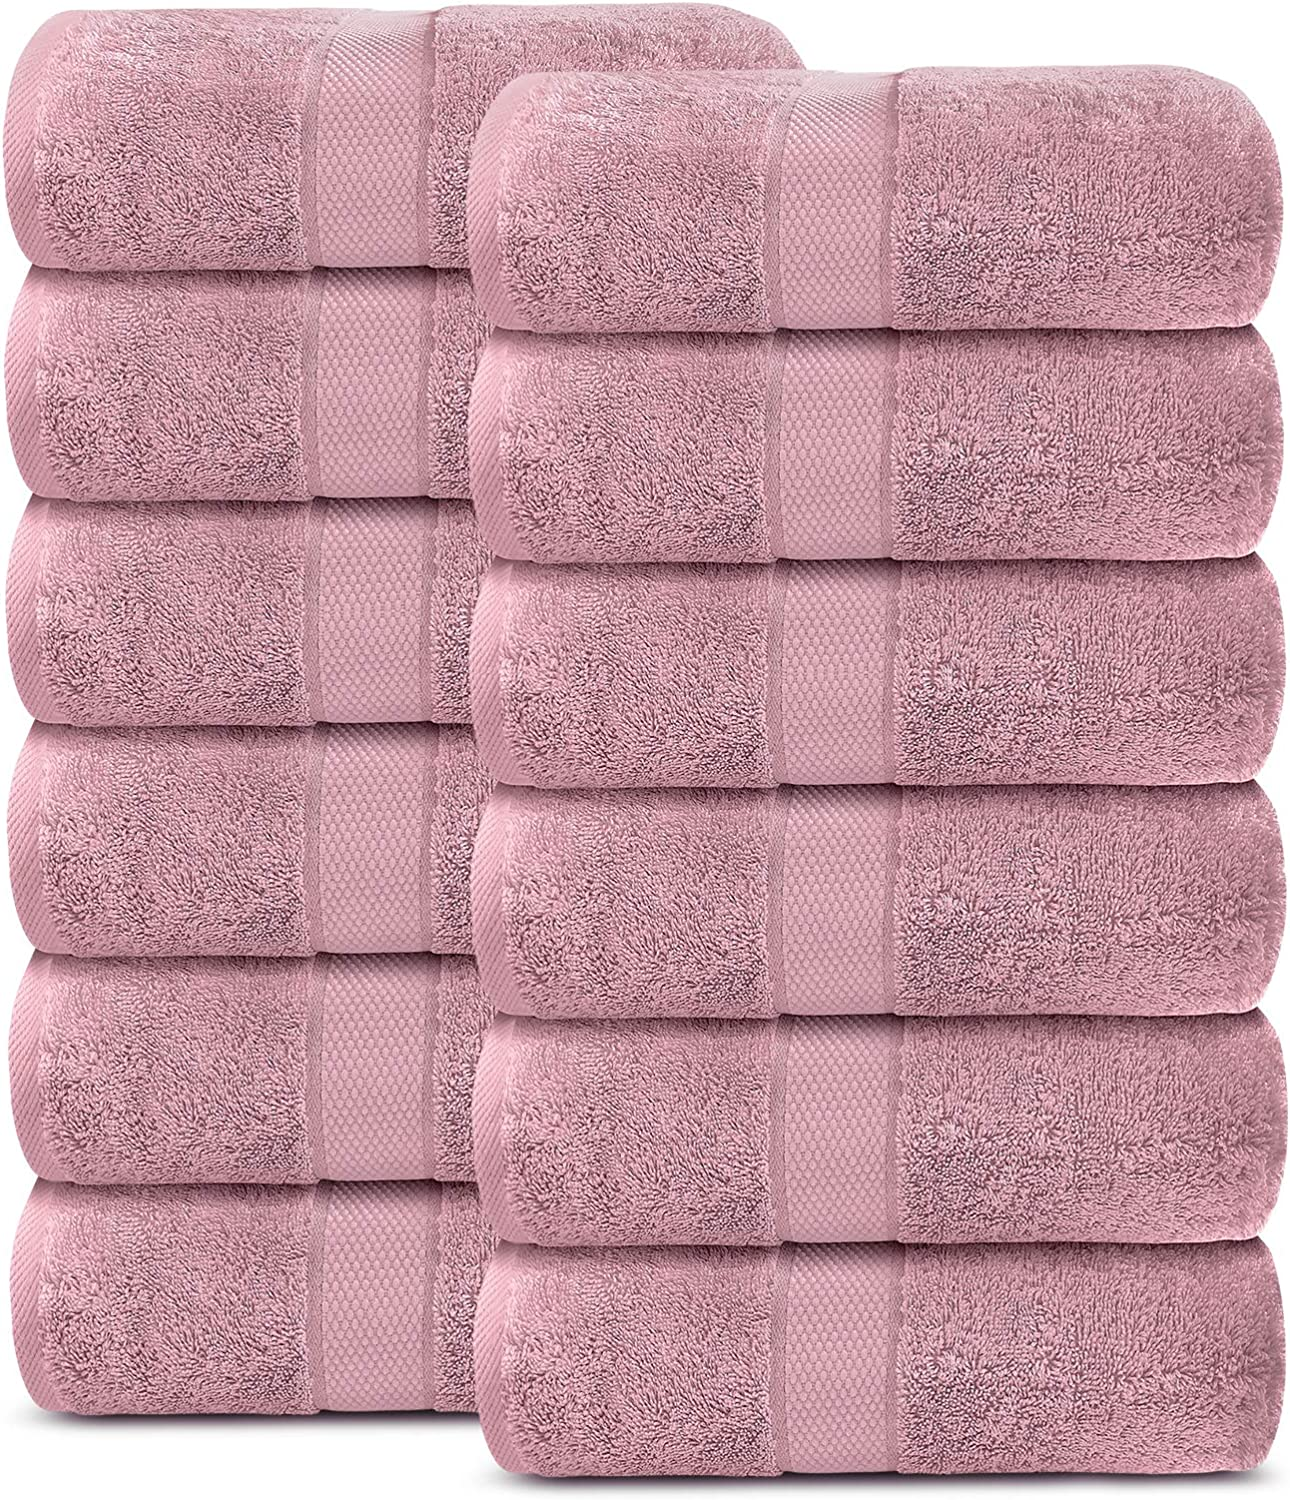 100% Cotton Towels Pack of 12 Heavy Face 600 Online limited product GSM Plush service